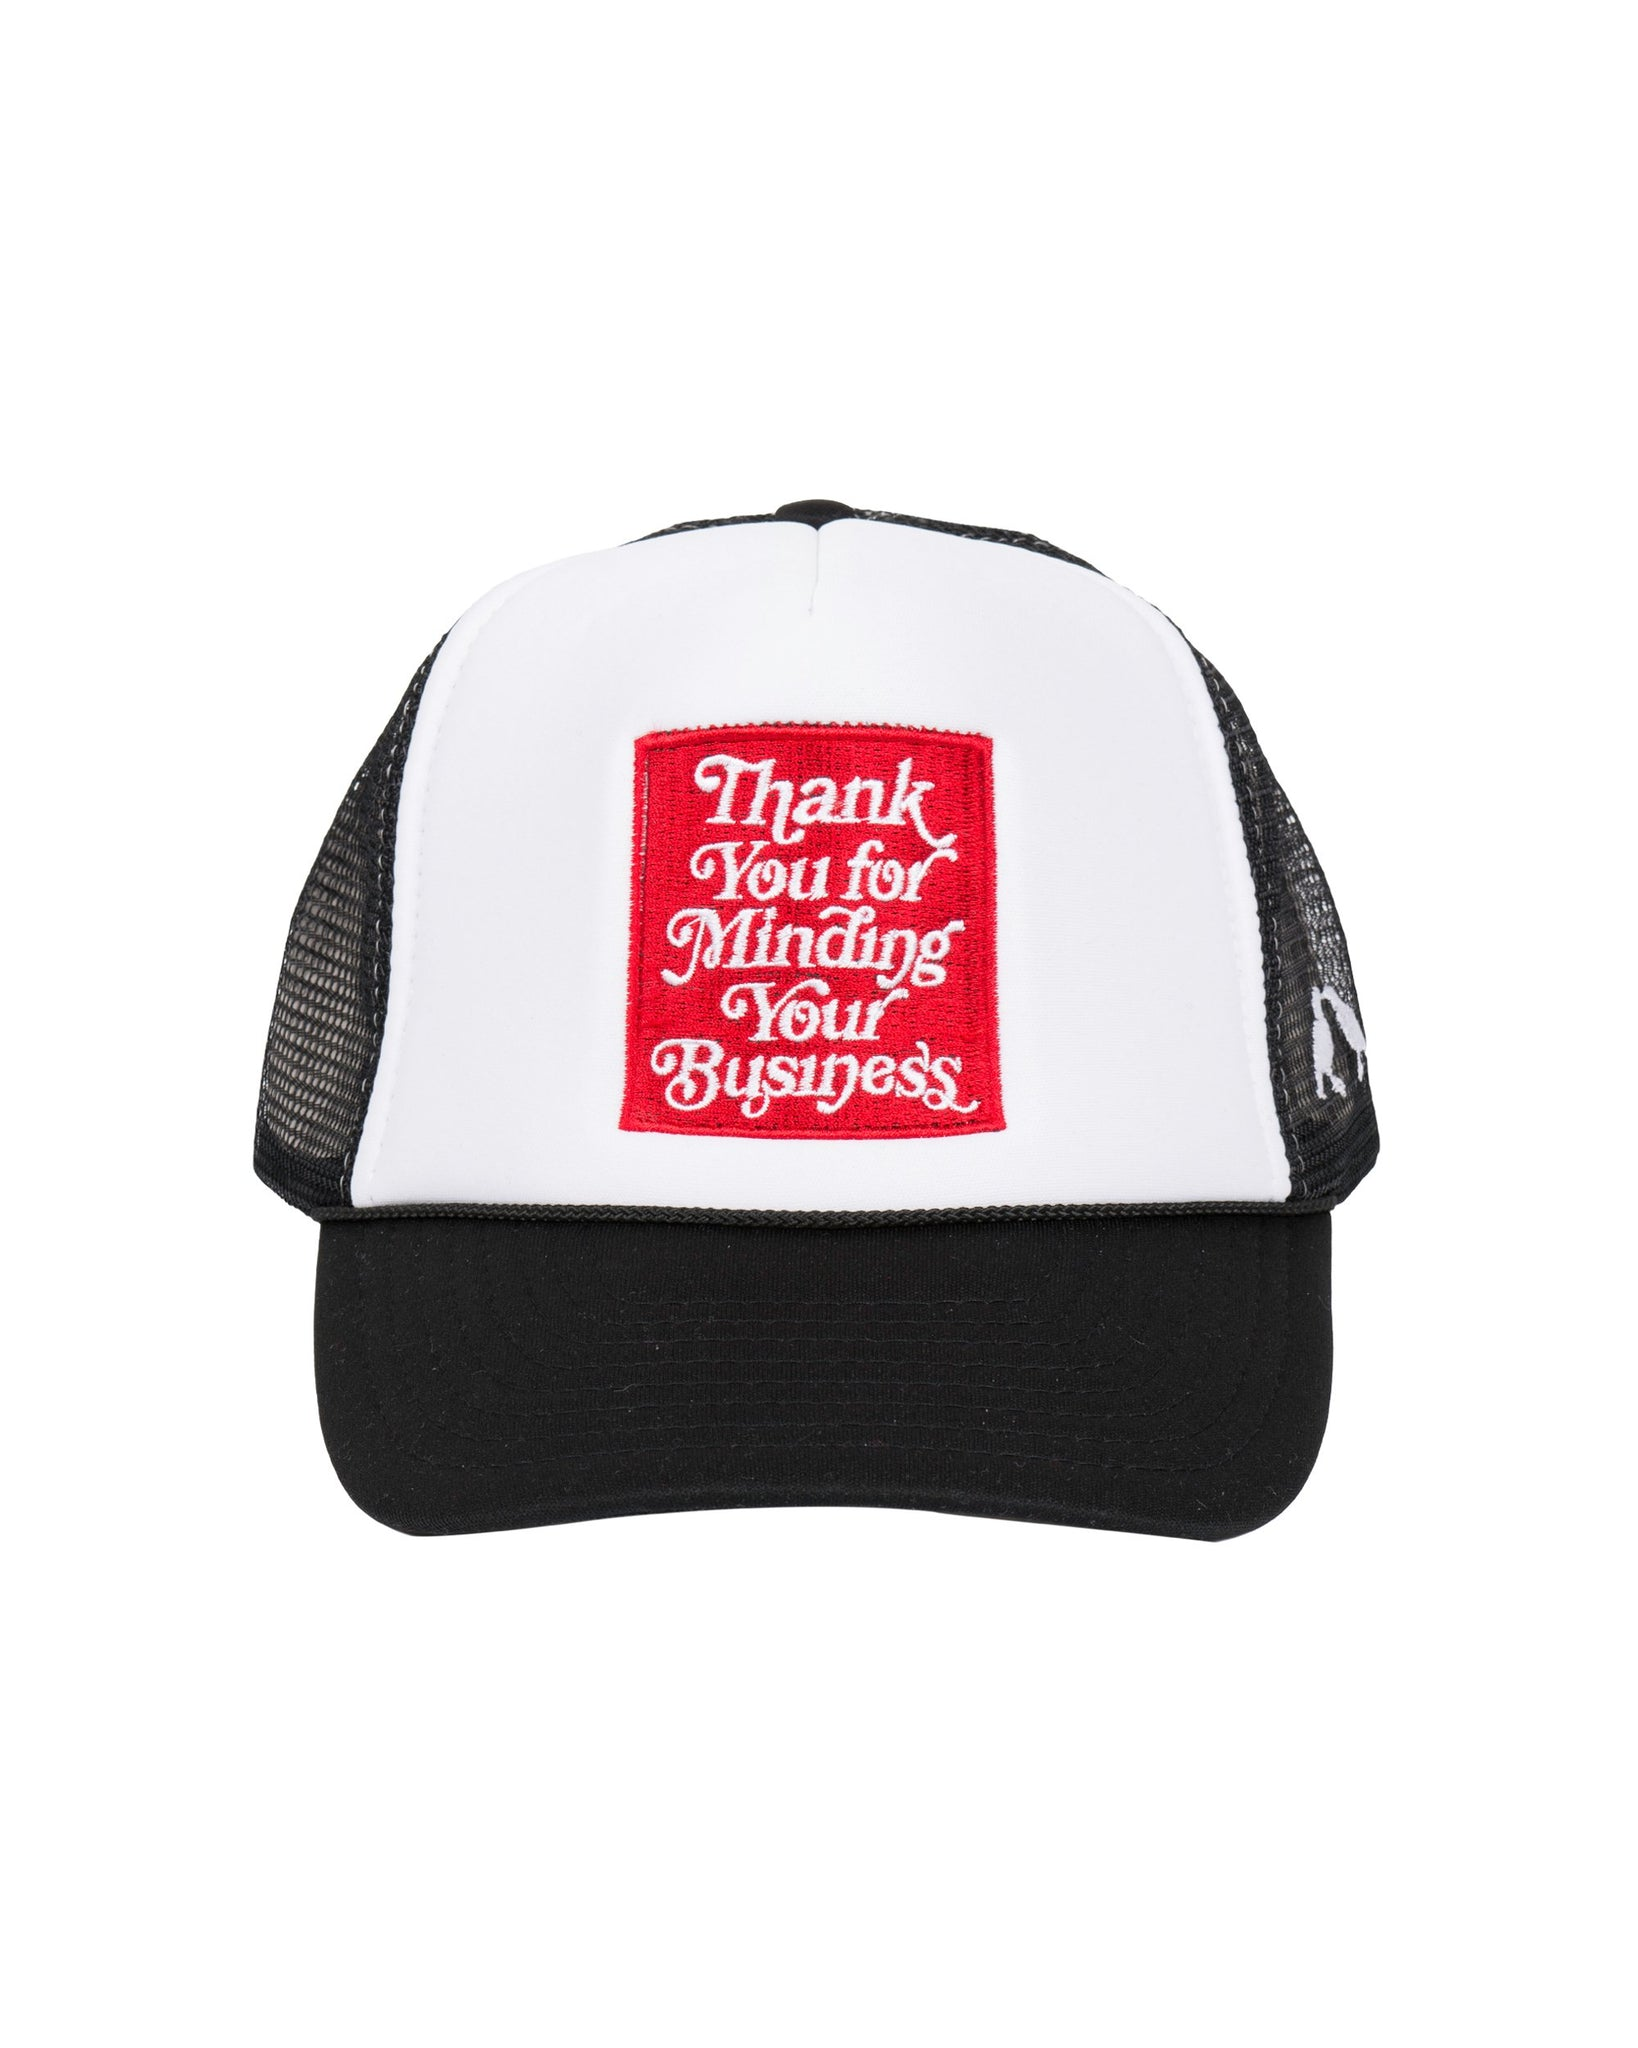 MIND YOUR BUSINESS TRUCKER HATS